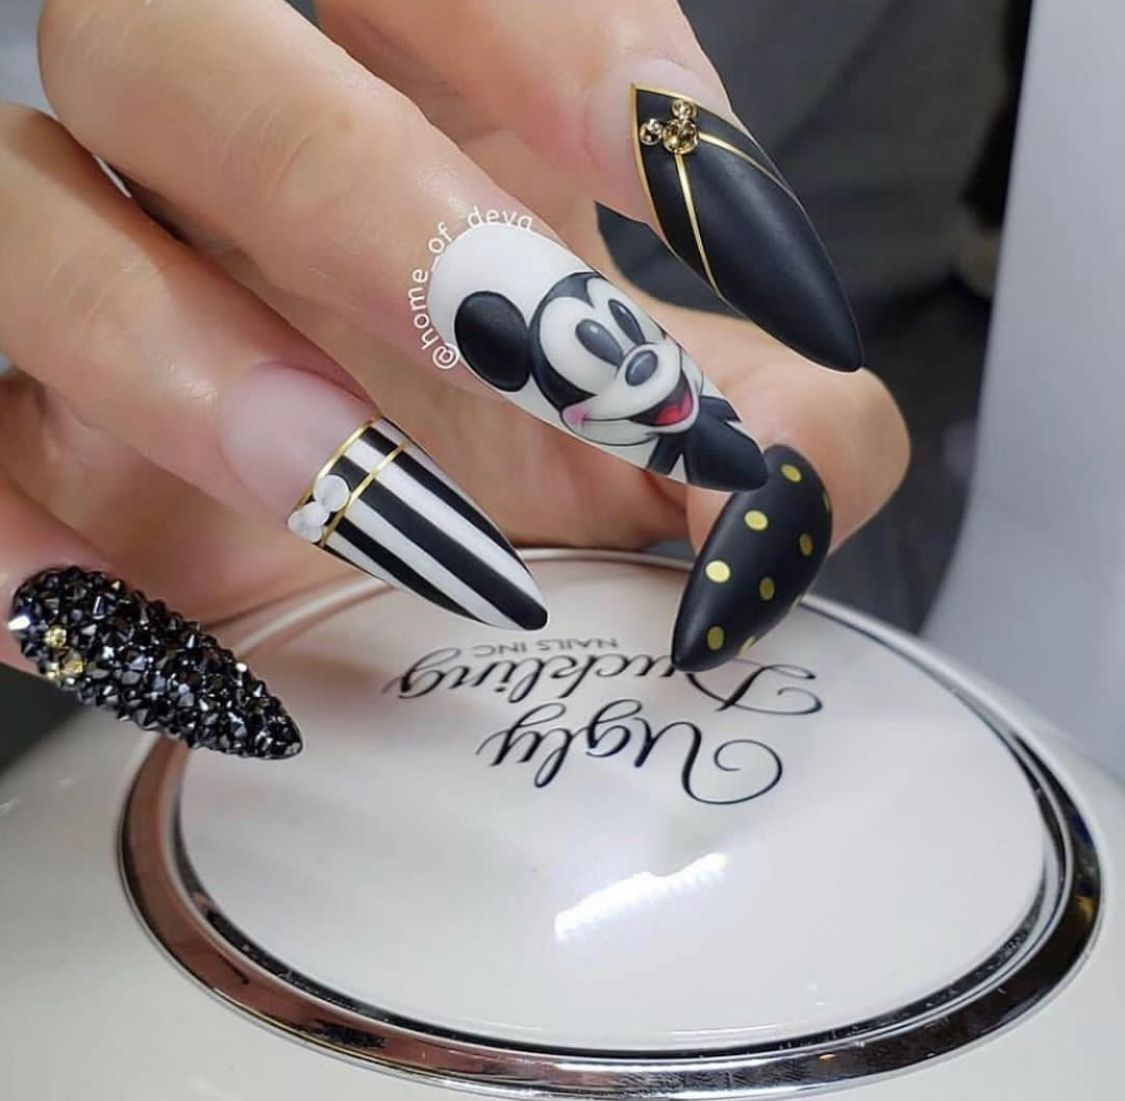 Pin by Yamz on Nails in 2020 | Scary halloween nails ...